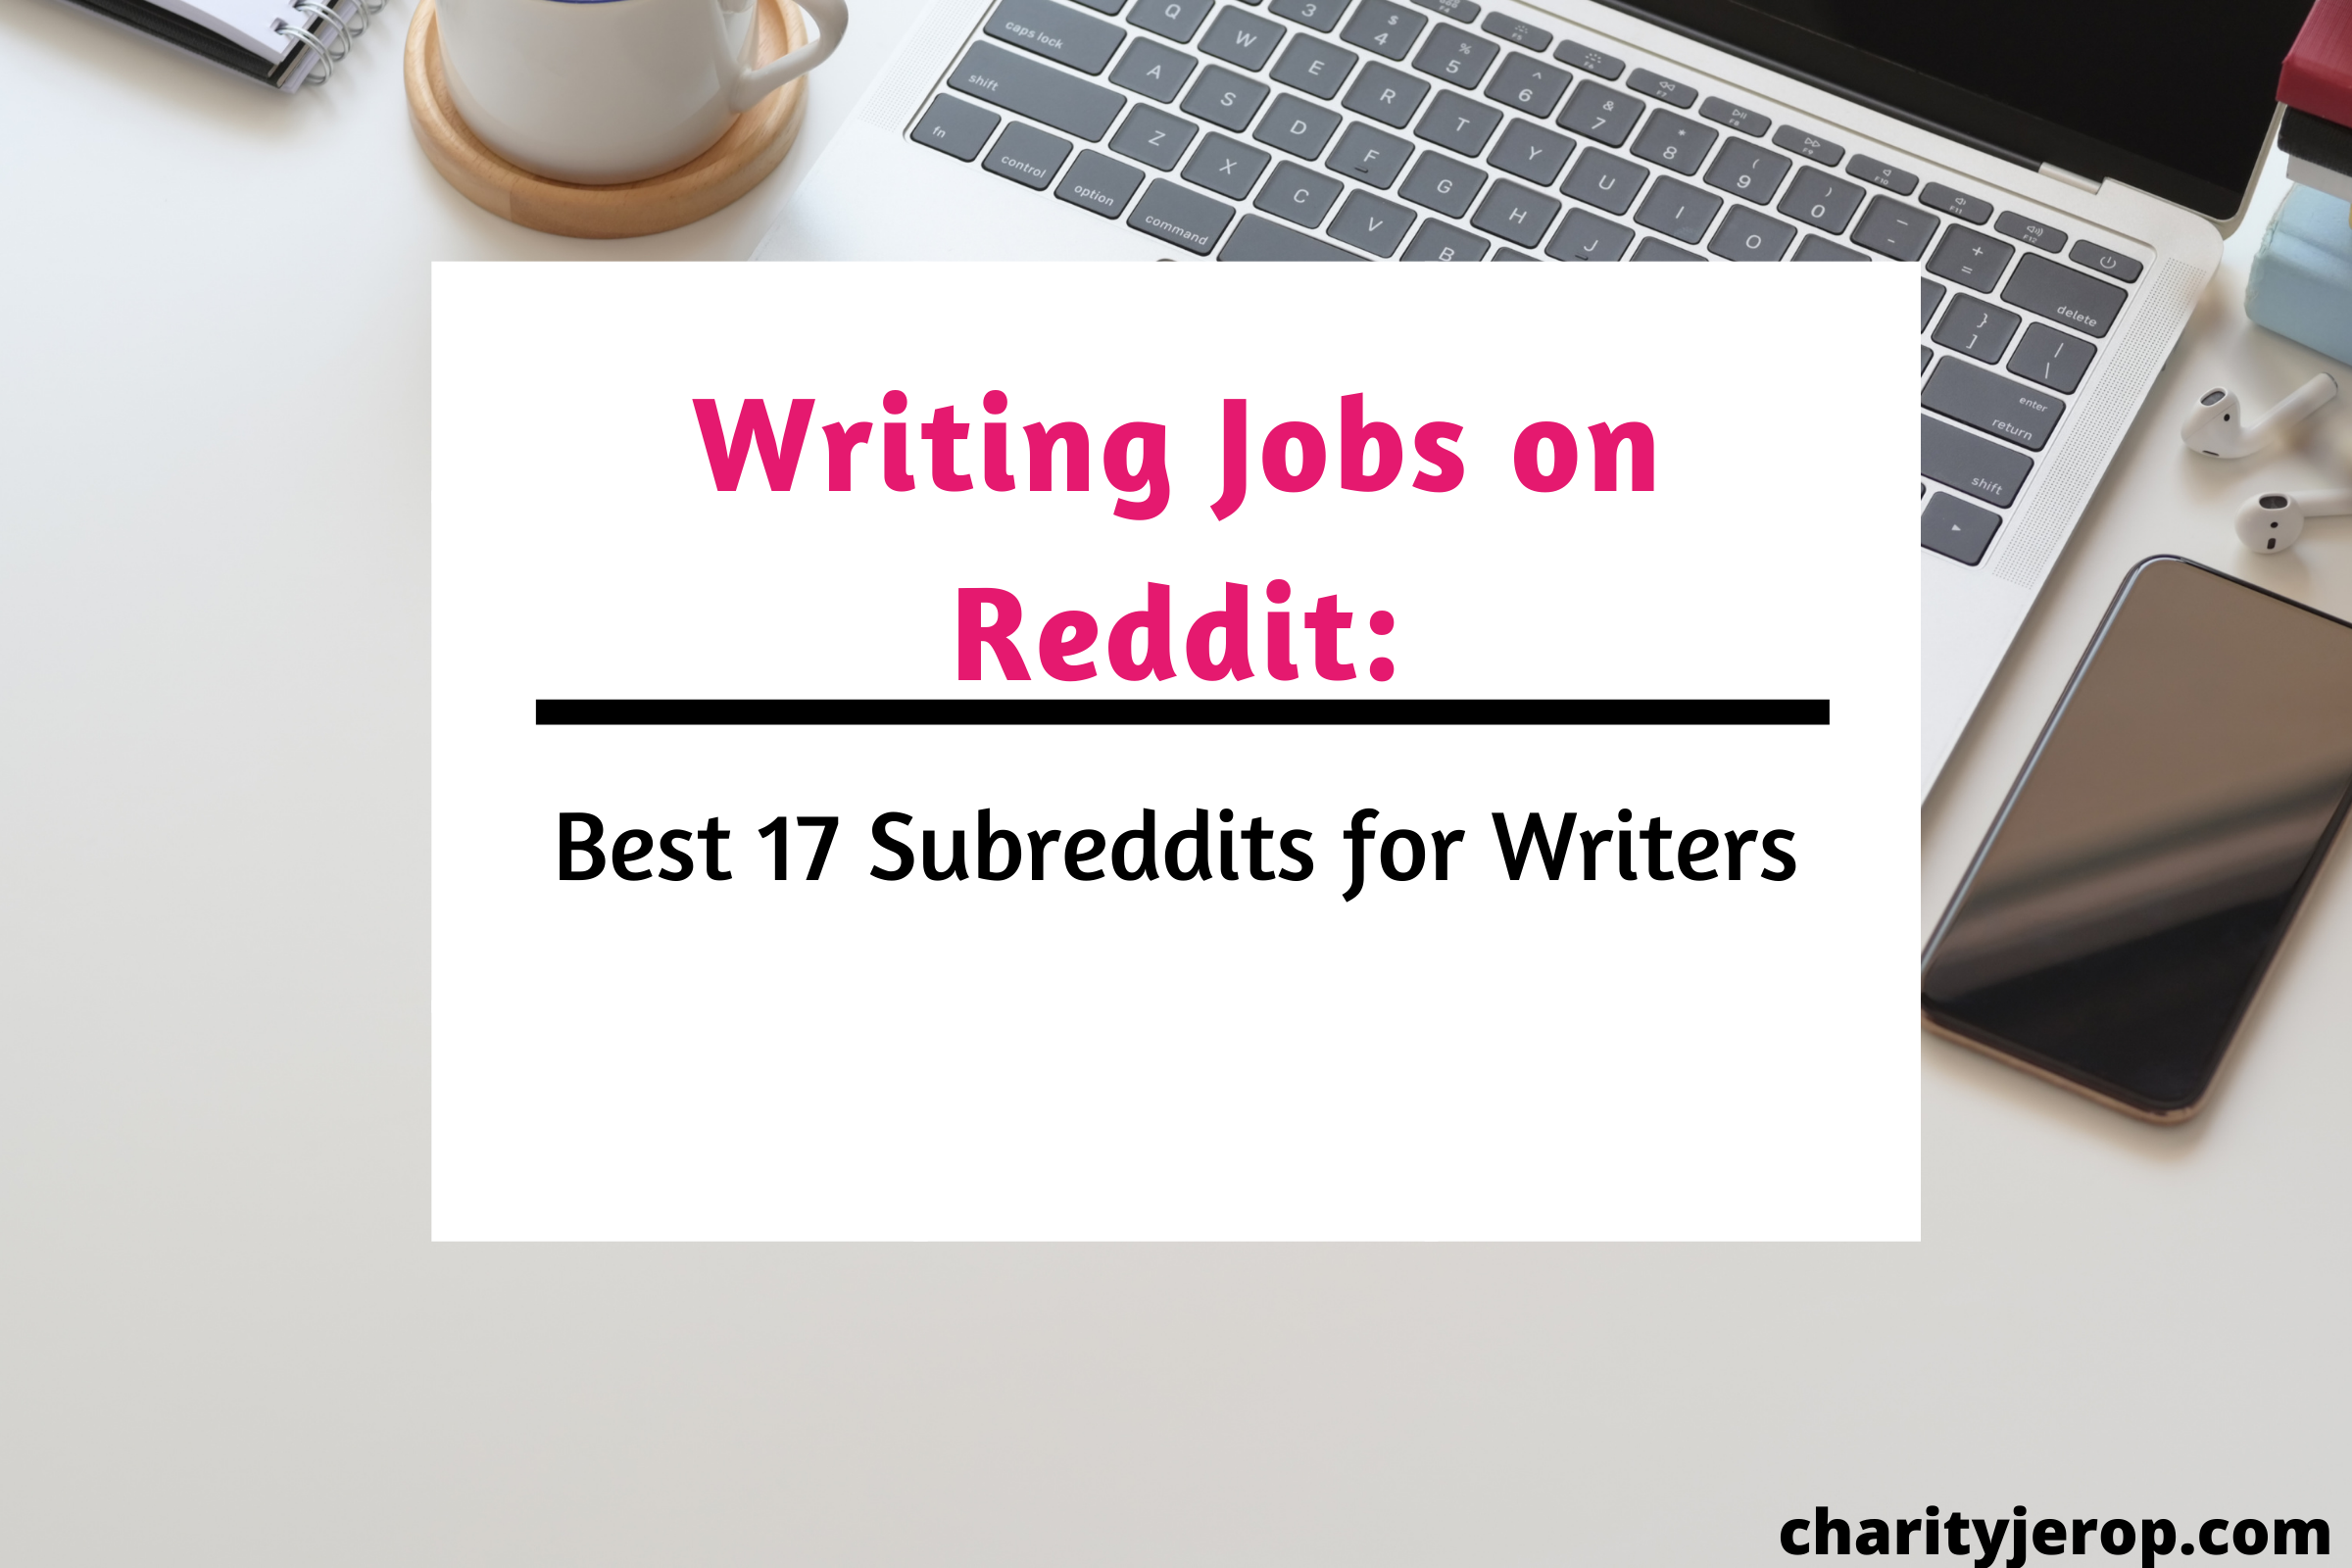 Writing jobs on reddit